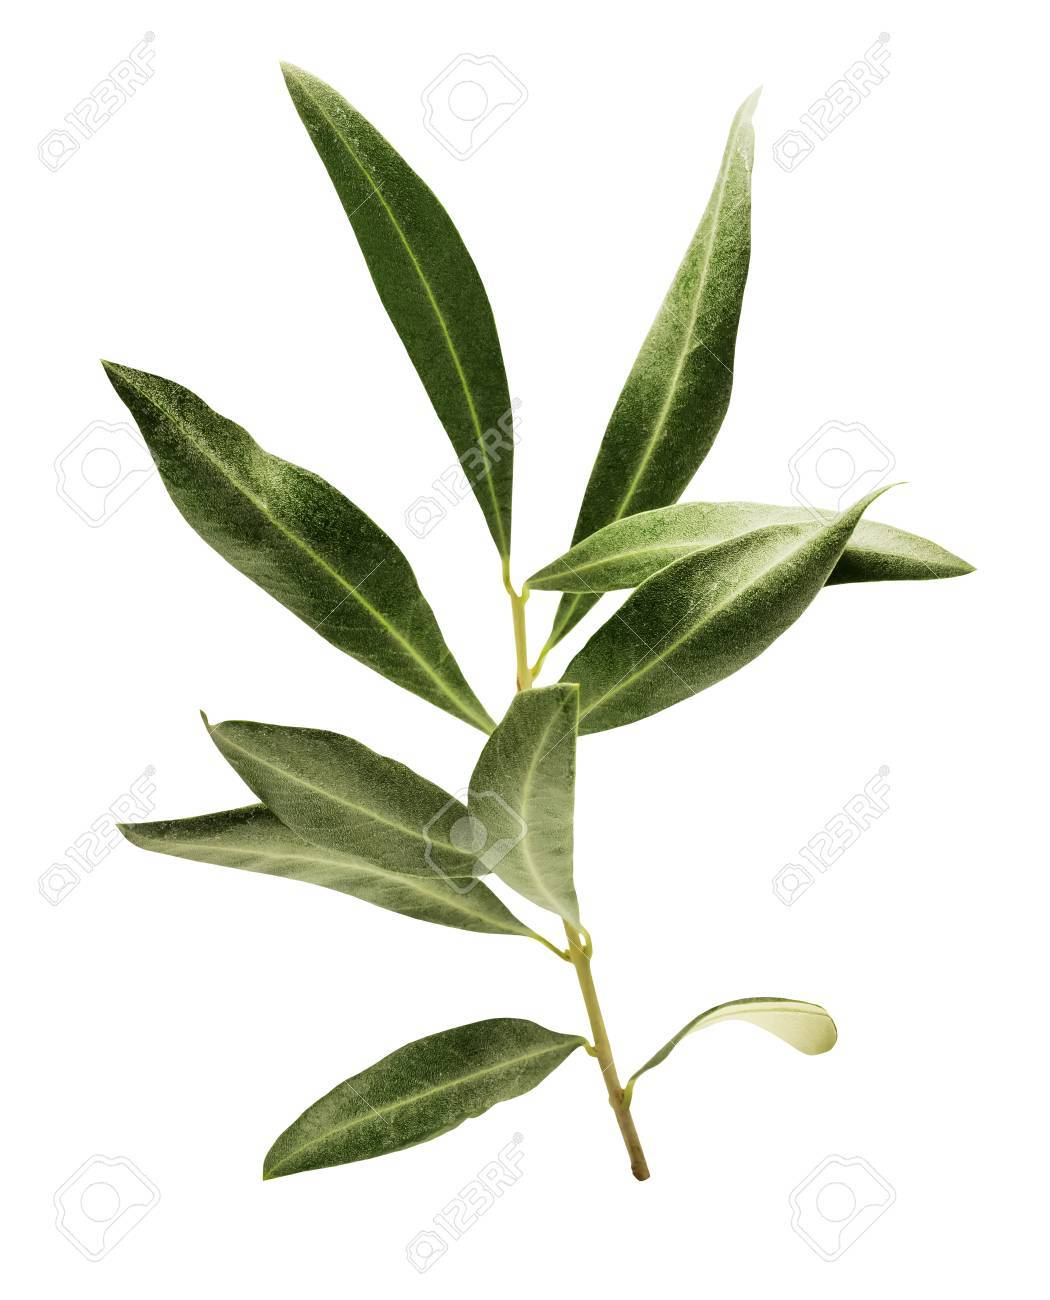 Photo of green olive branch, isolated on white - 74166108